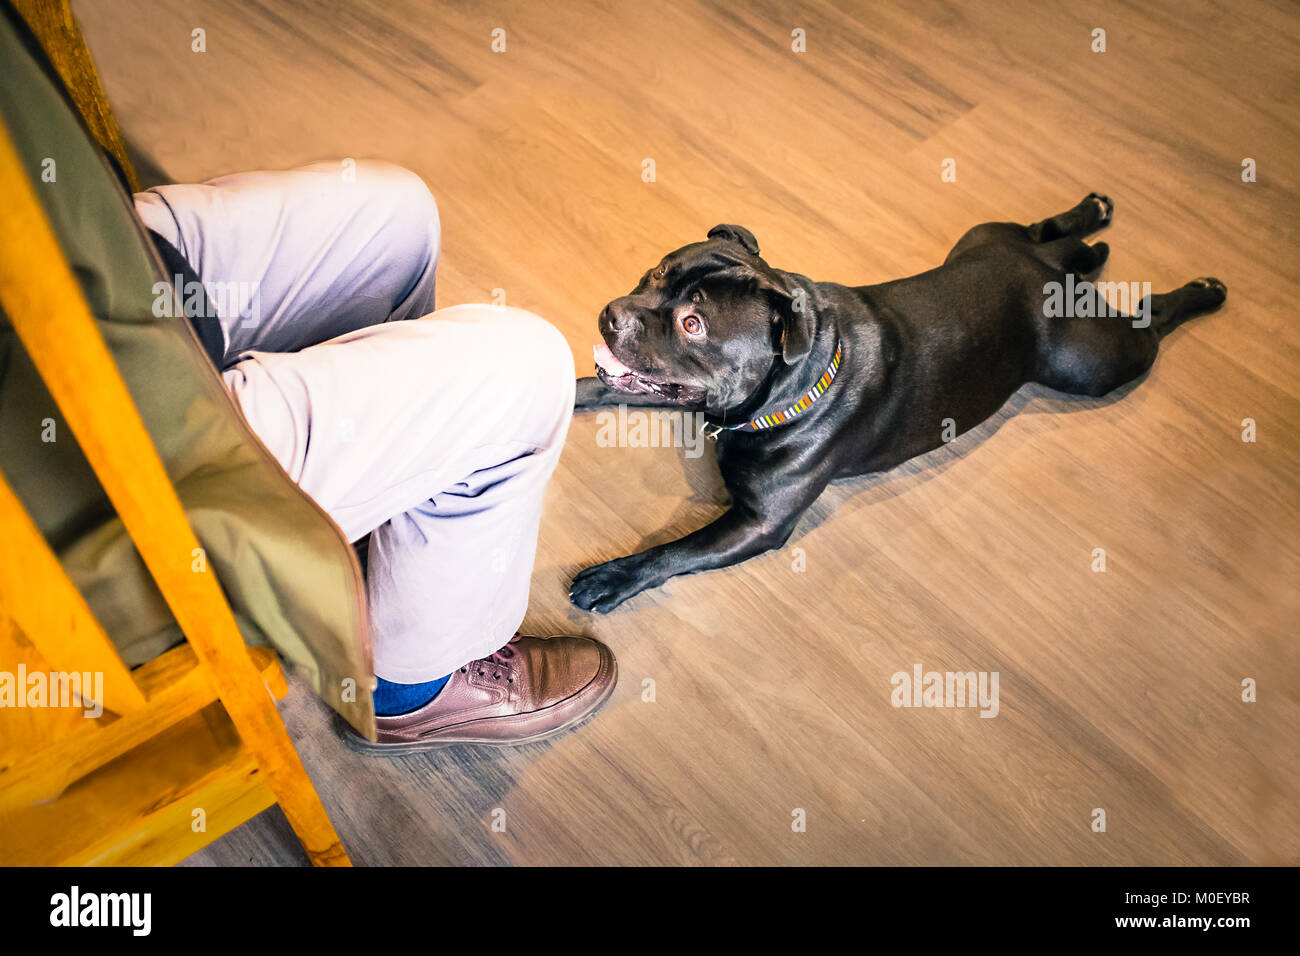 black staffordshire bull terrier dog lying down with his legs stretched out behing him on a wooden floor, he is - Stock Image